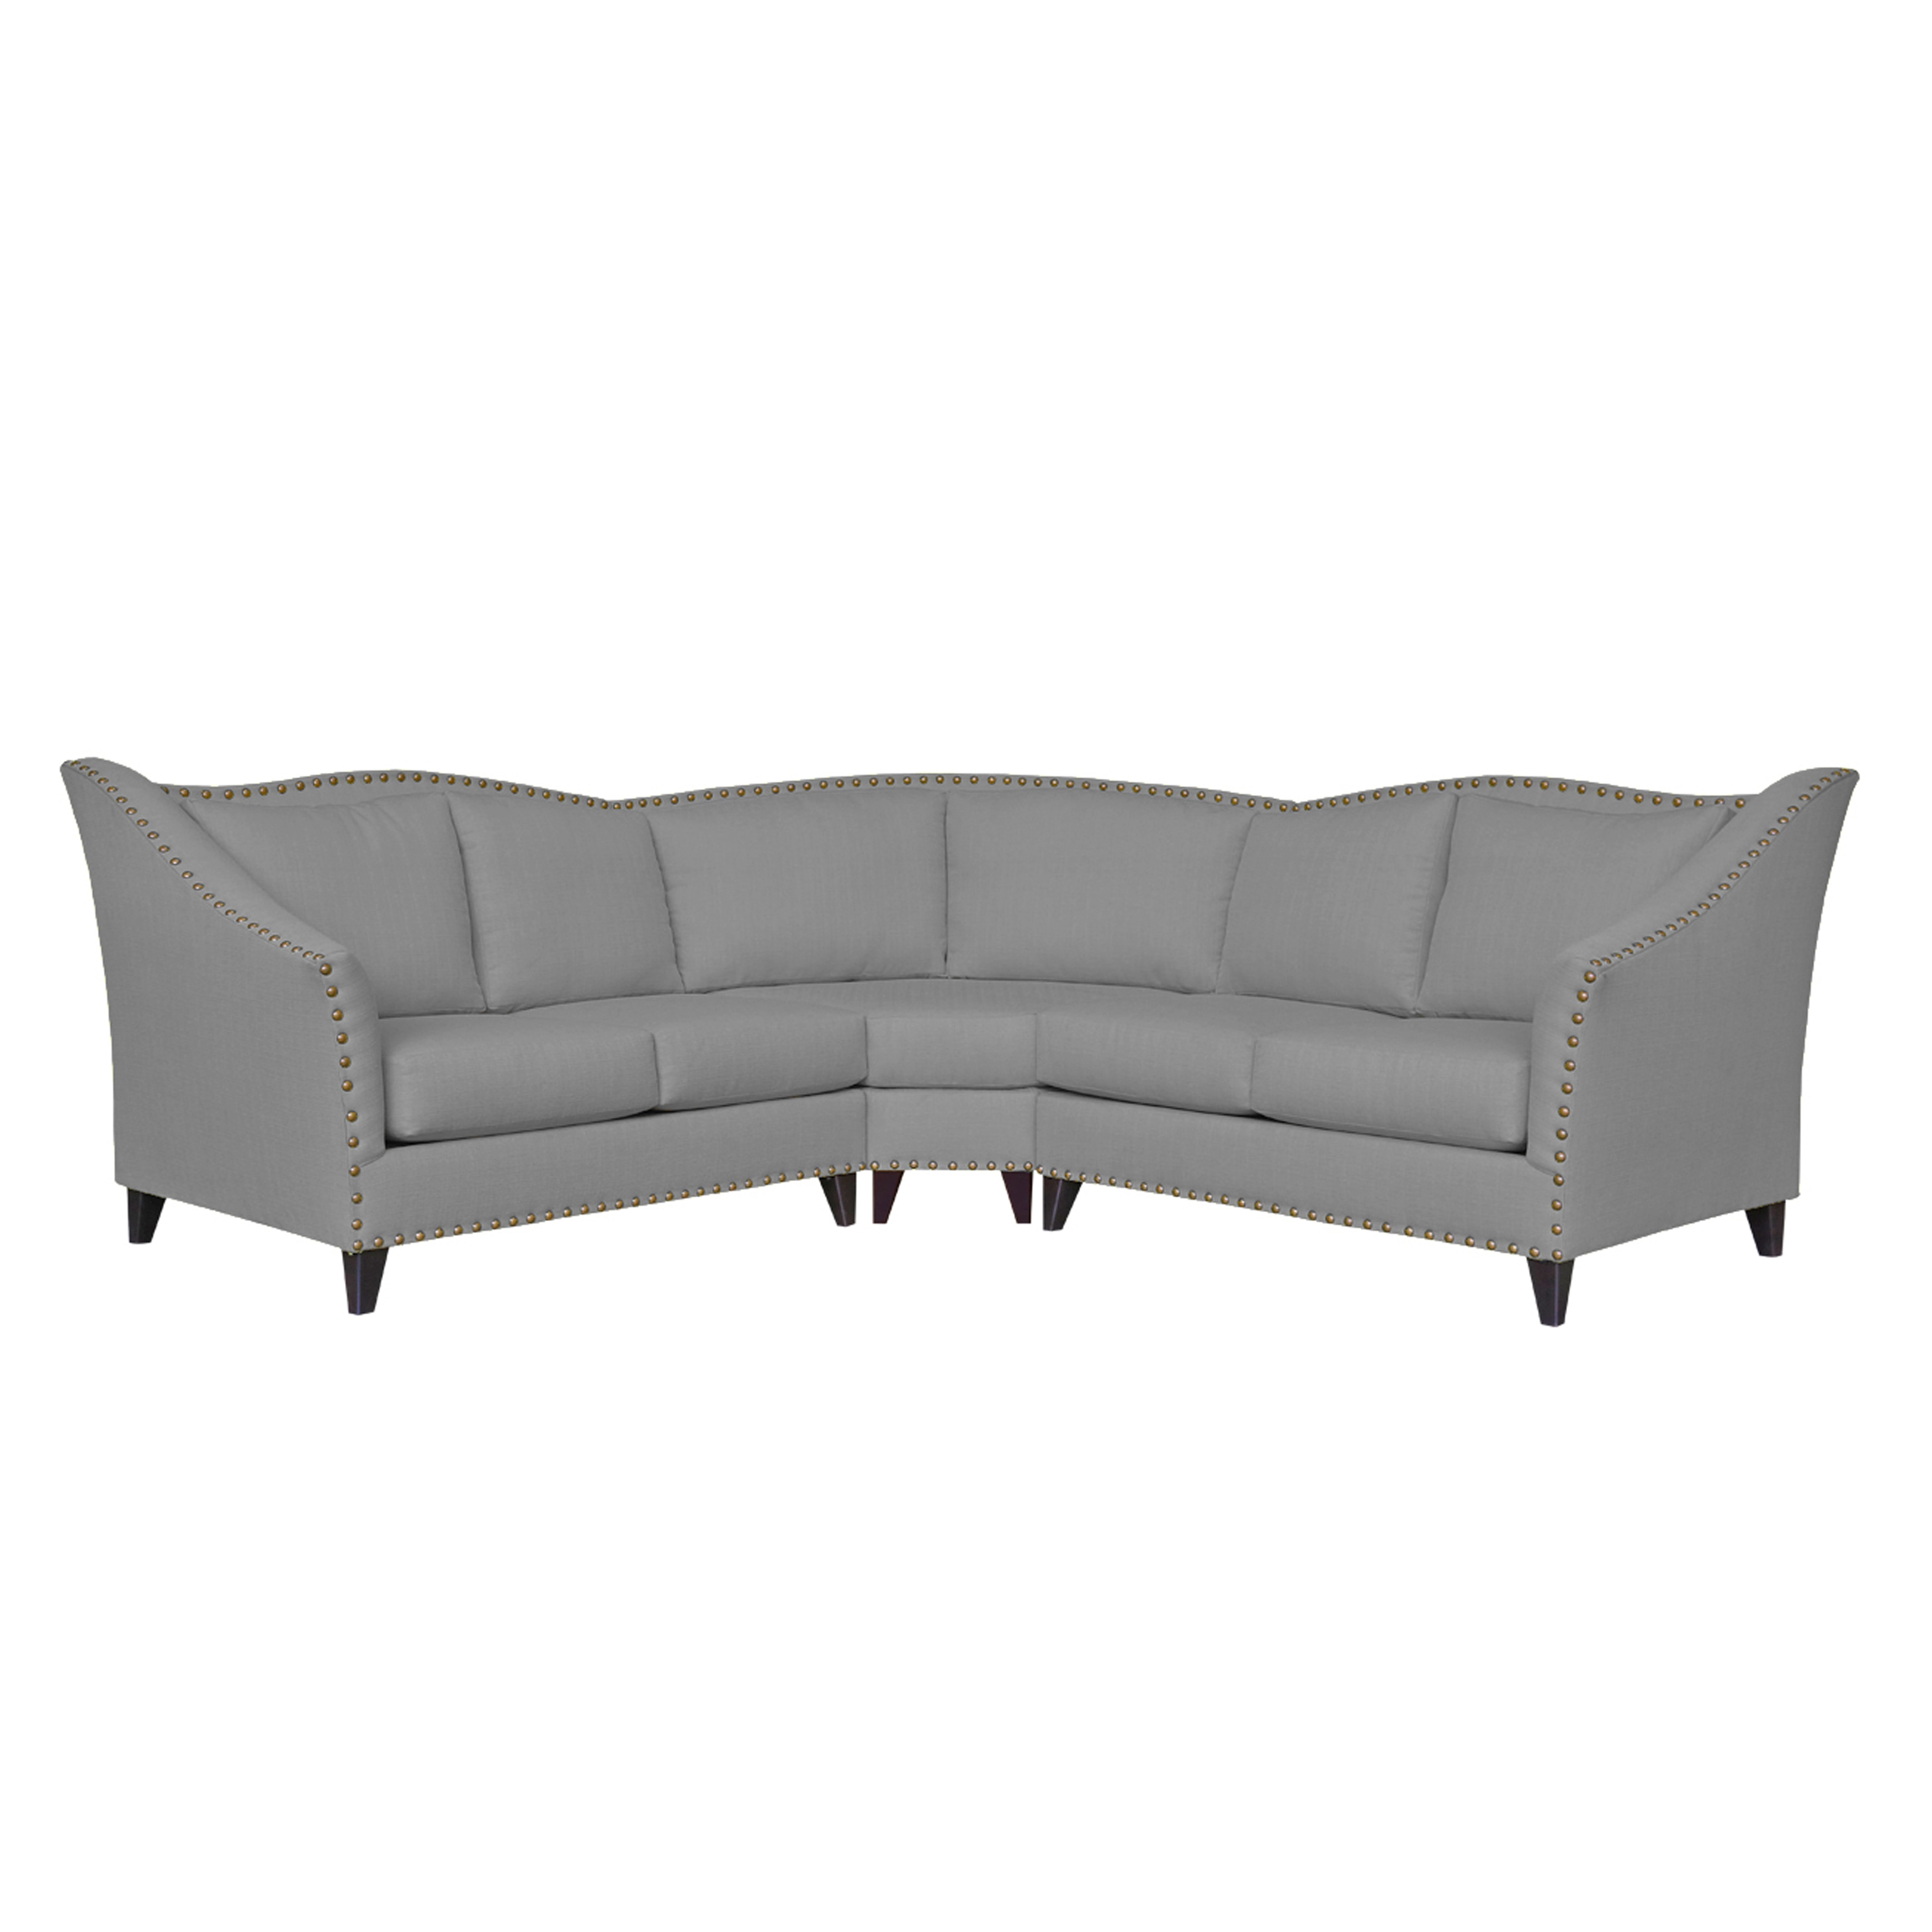 inside curved in sale design decoration perfect furniture sofa sectional home circular